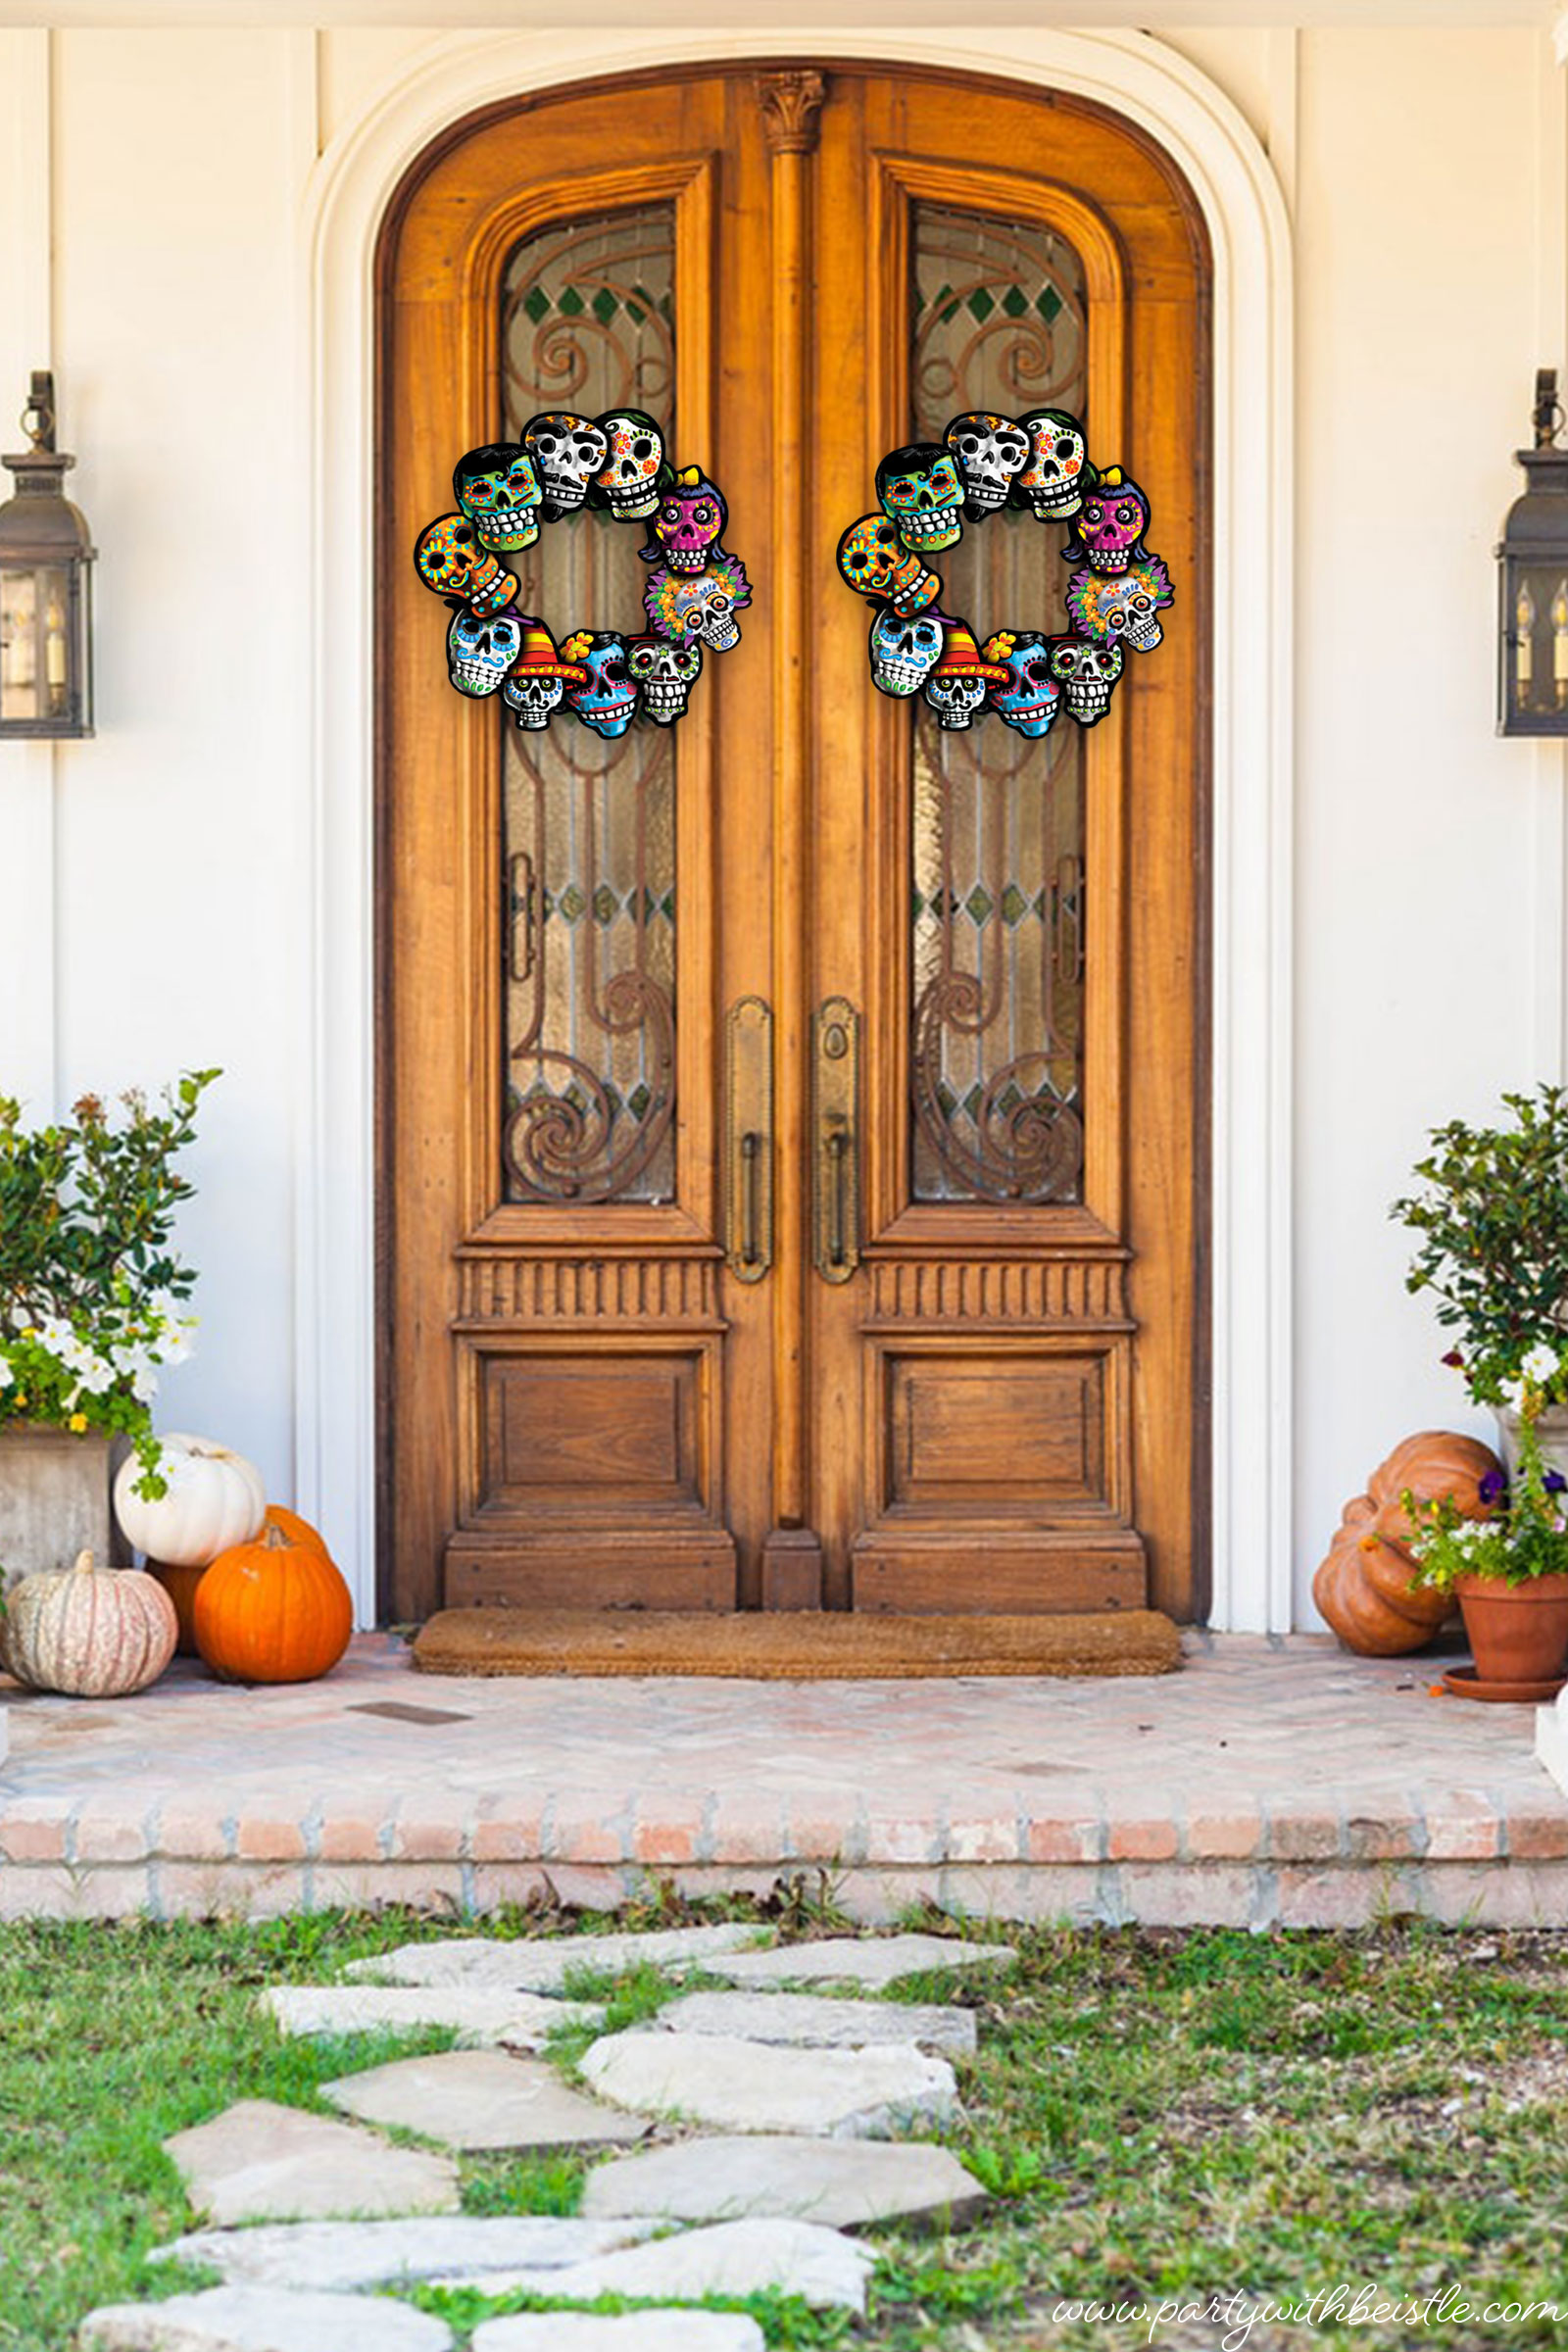 Mini-Cutout-Wreath-On-Door